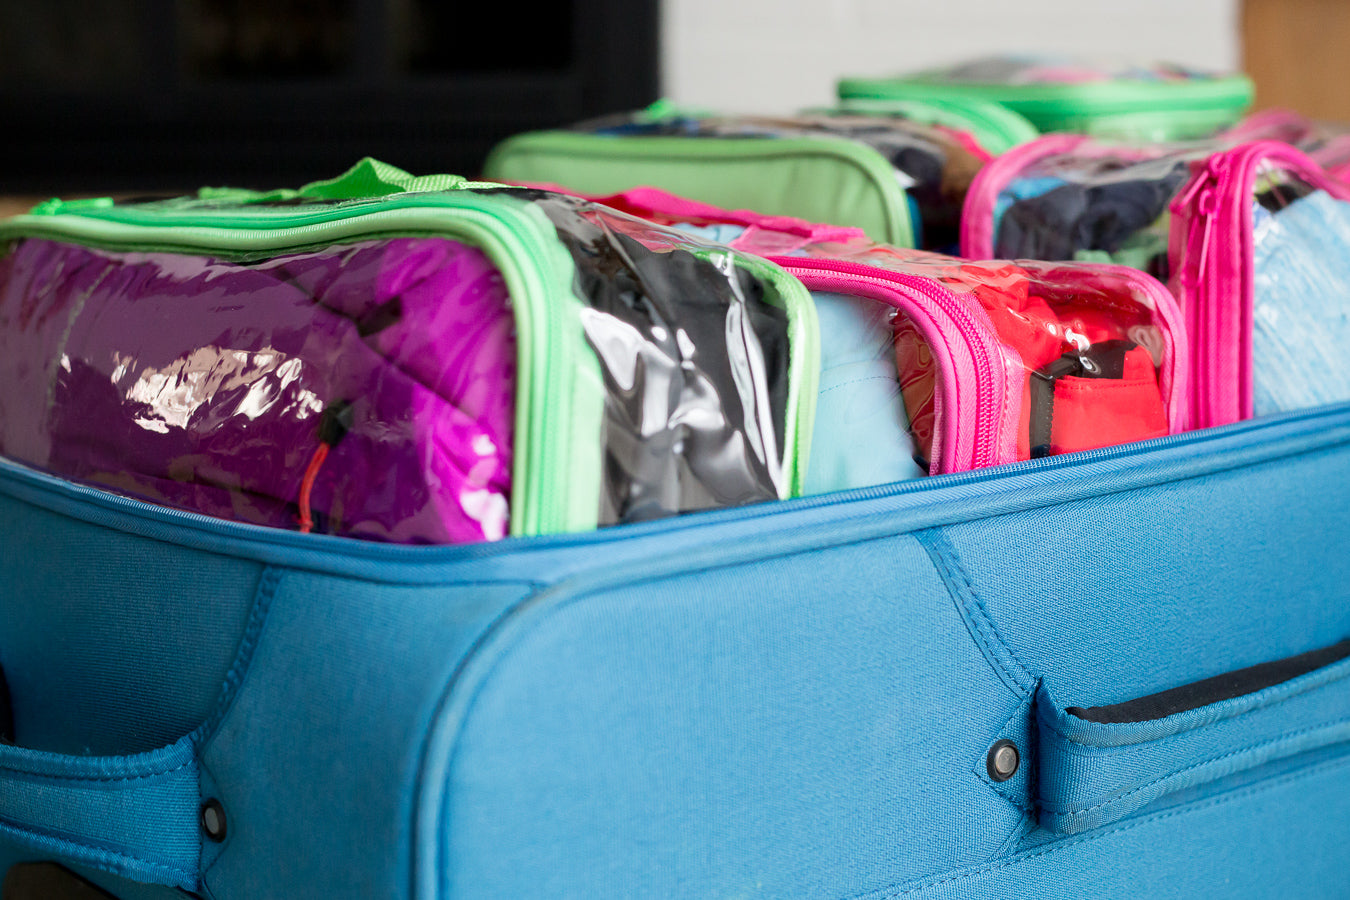 Packing cubes packed in luggage